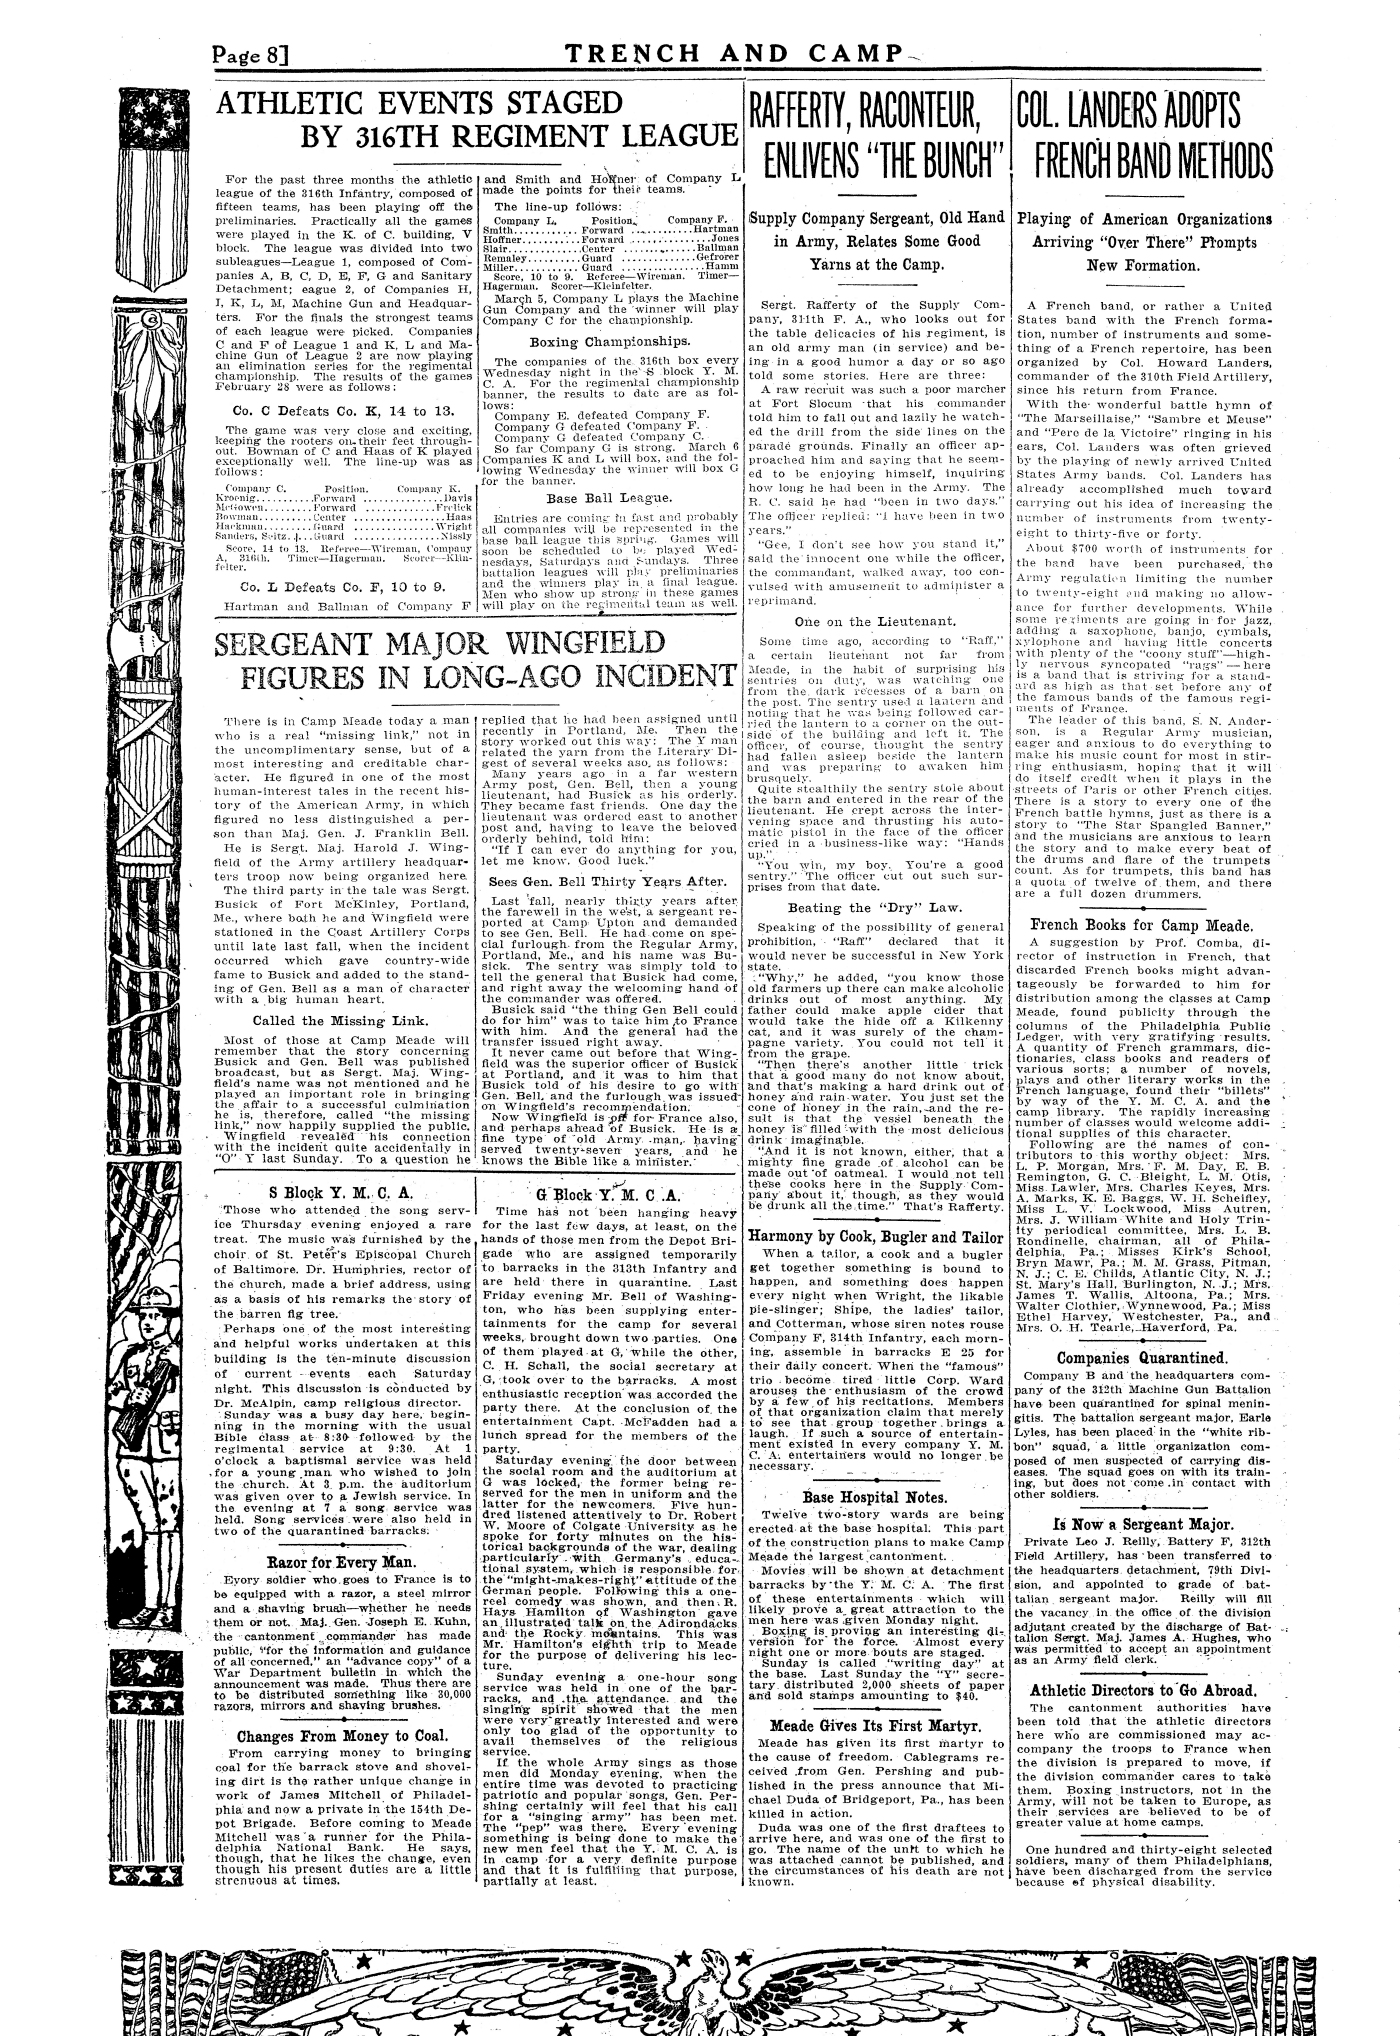 Trench and Camp Newspaper March 7 1918 Page 8